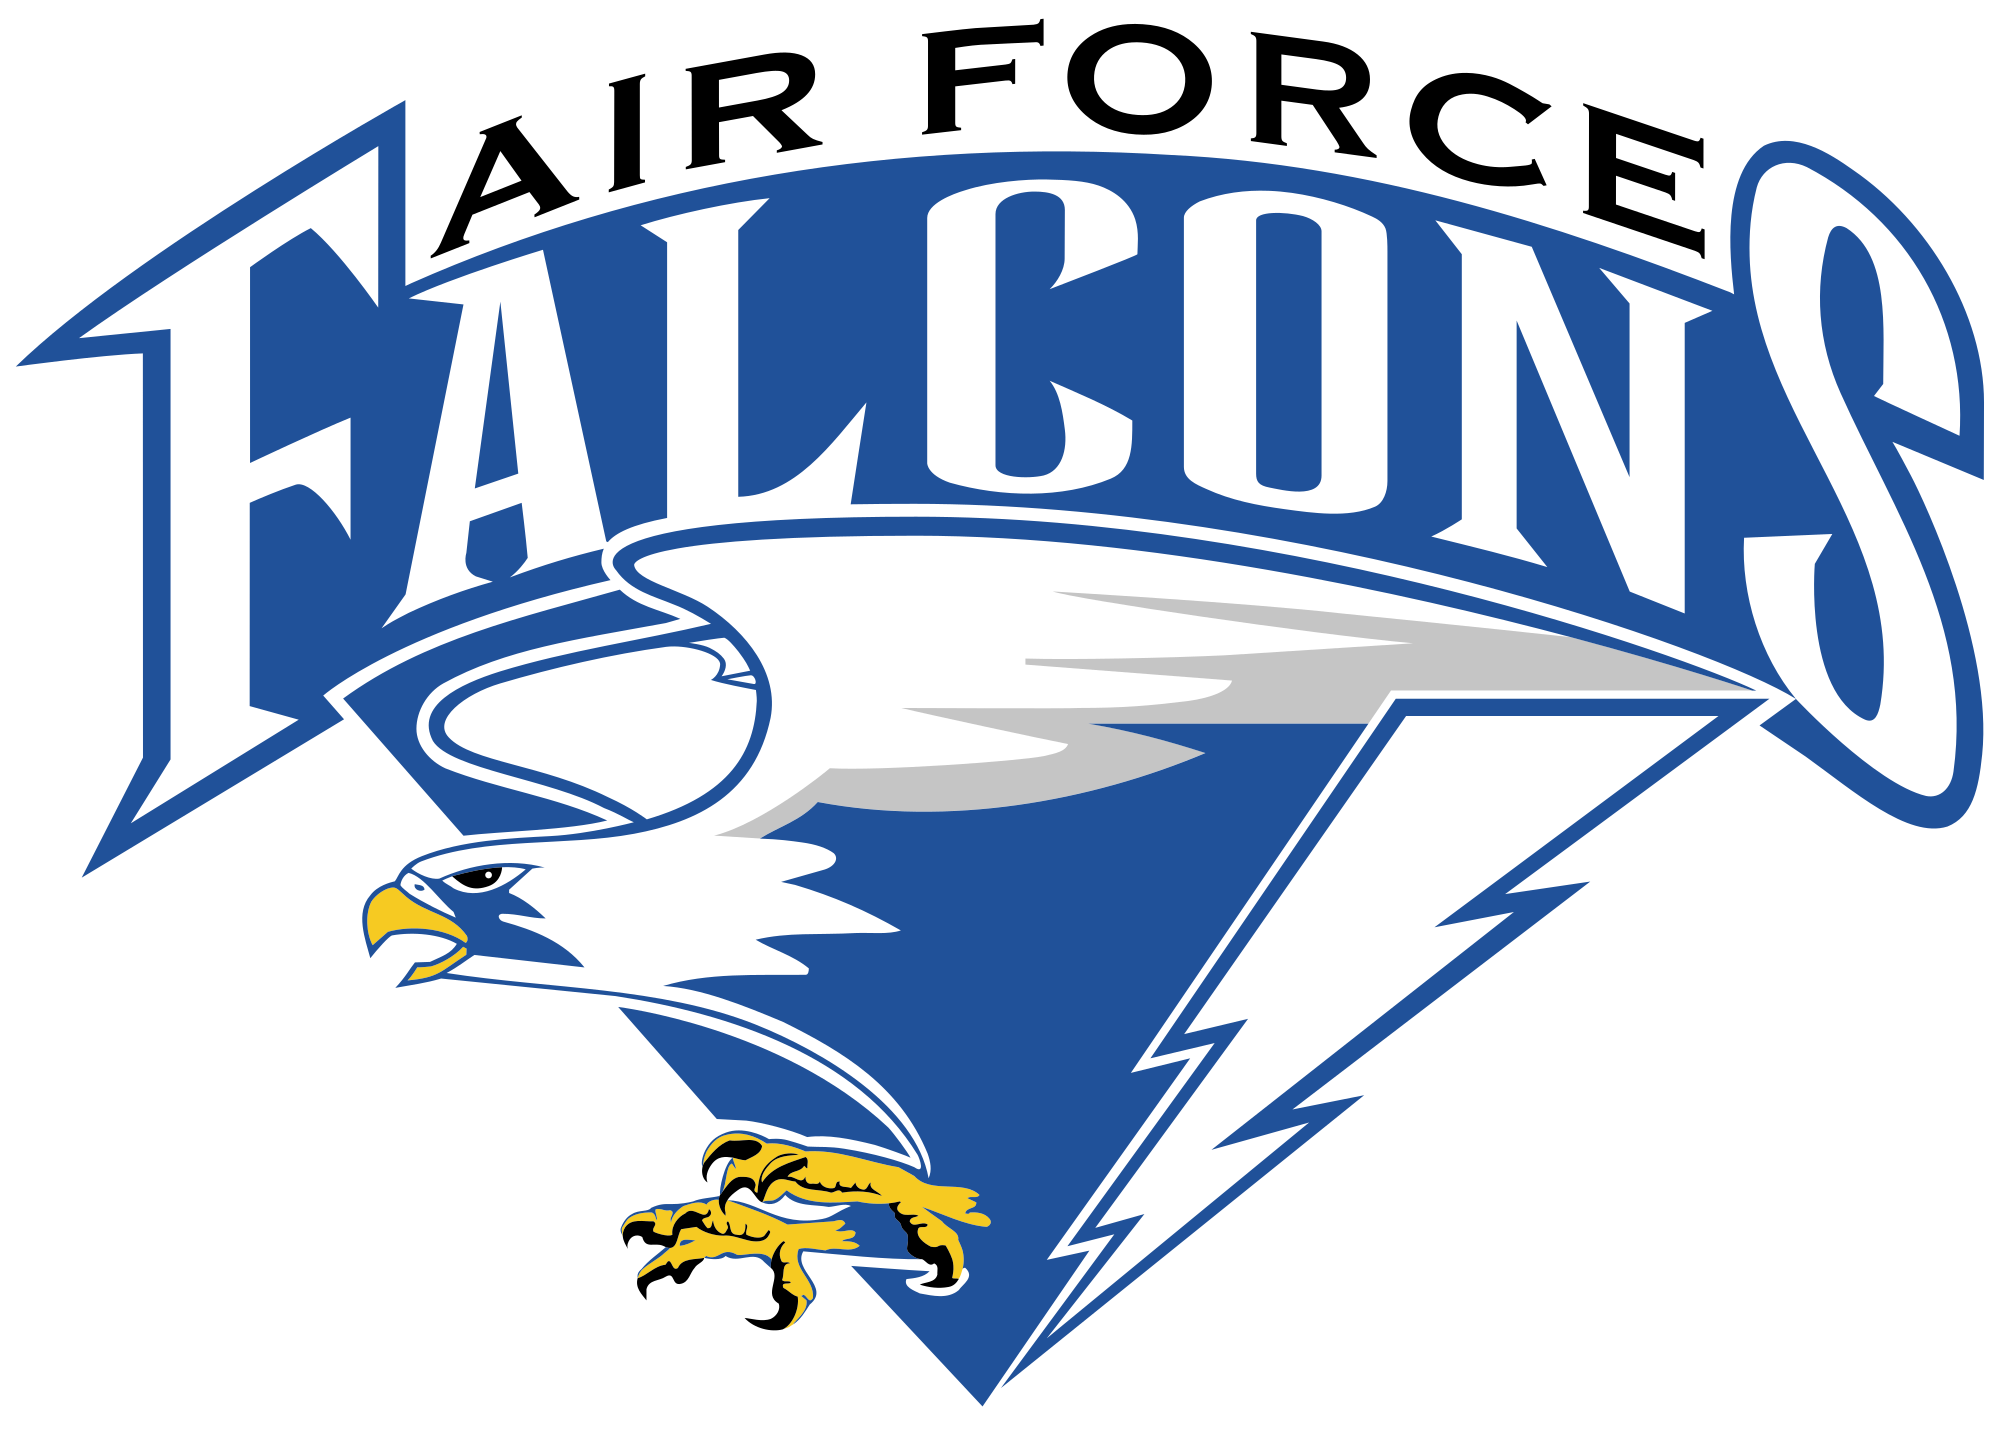 Falcon clipart falcon football.  air force falcons